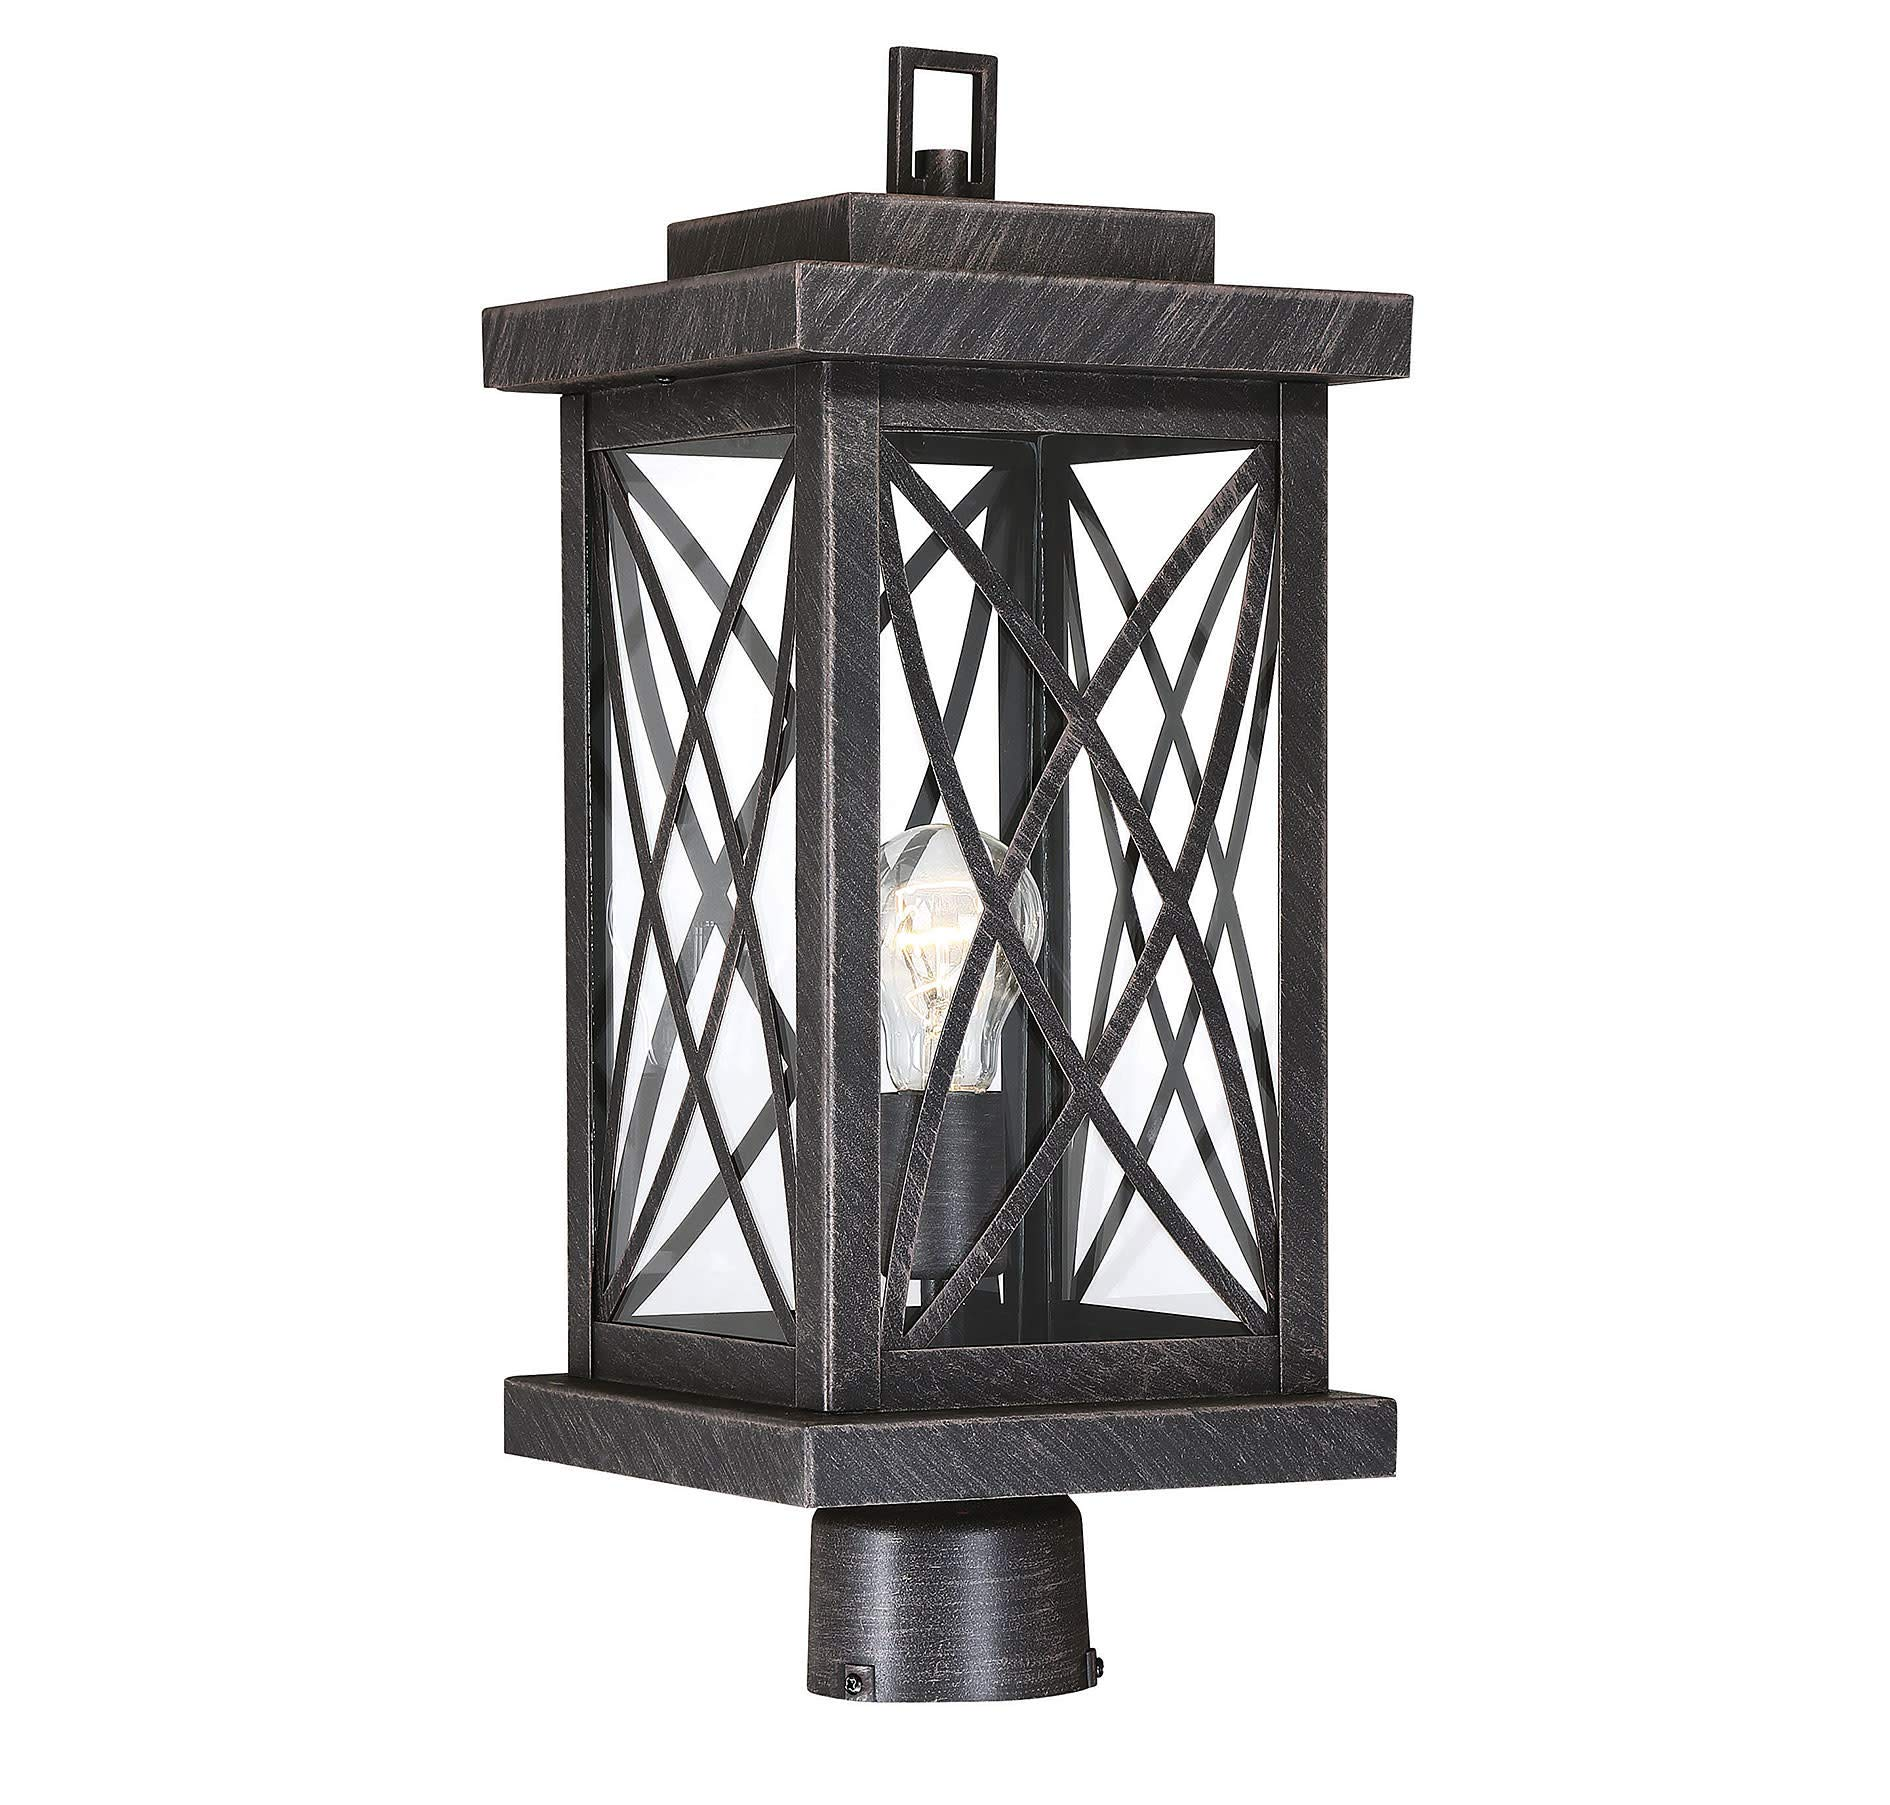 Savoy House 5-704-113 Norwalk - One Light Outdoor Post Lantern, Brushed Bronze Finish with Clear Glass